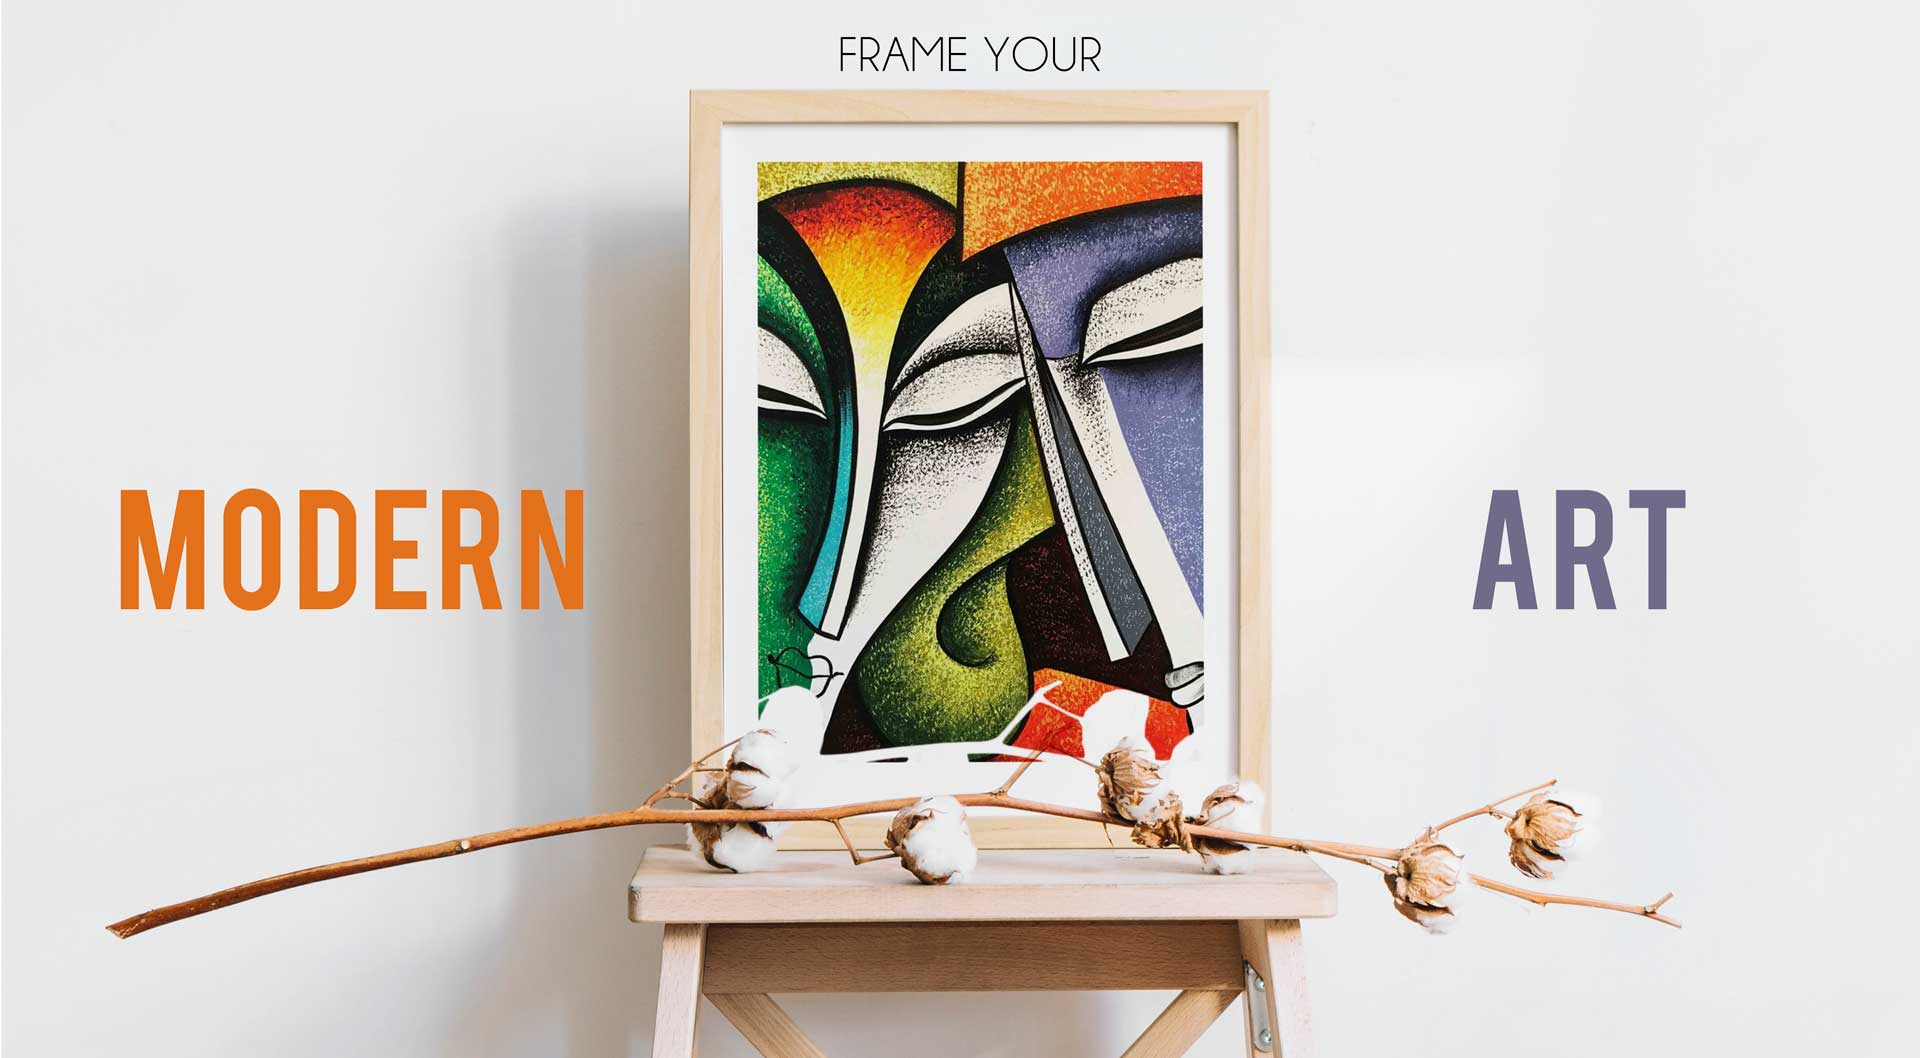 How to select Frames for your modern art? | Frames in Abu Dhabi.